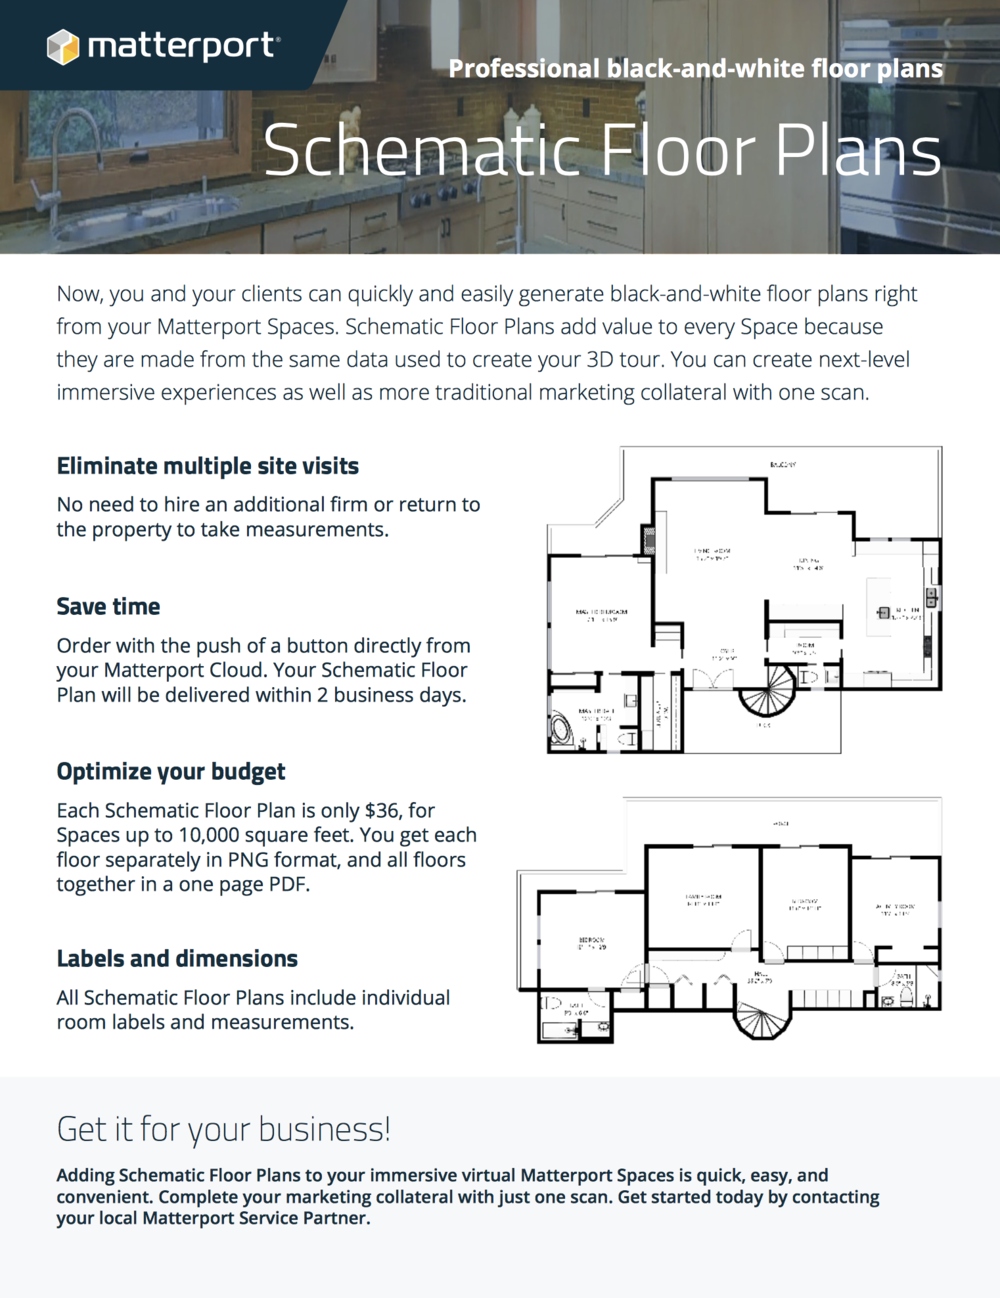 Create Traditional Floor Plans - Adding Schematic Floor Plans to your immersive virtual Matterport Spaces is quick, easy, and convenient. Complete your marketing collateral with just one scan. Get started today by contacting your local Matterport Service Partner.